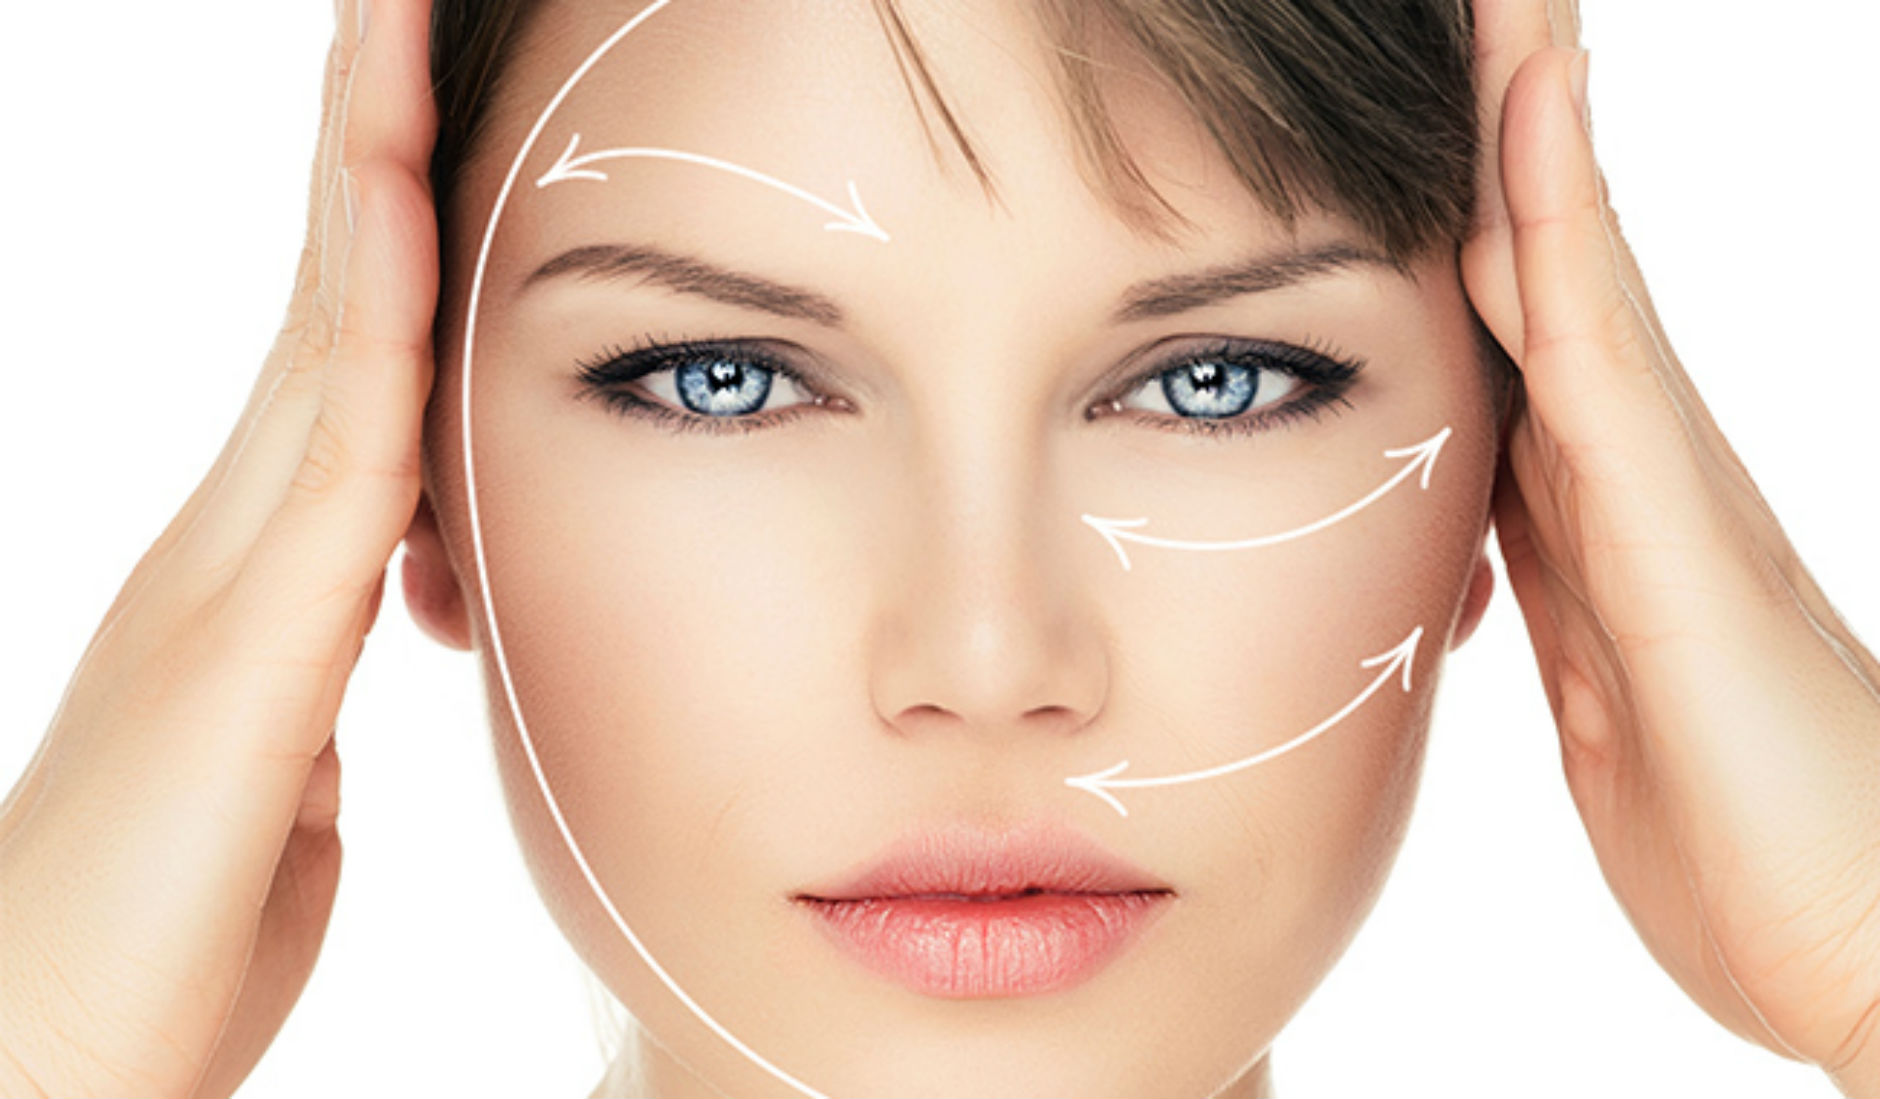 Why is Thread Lift Getting Popular?